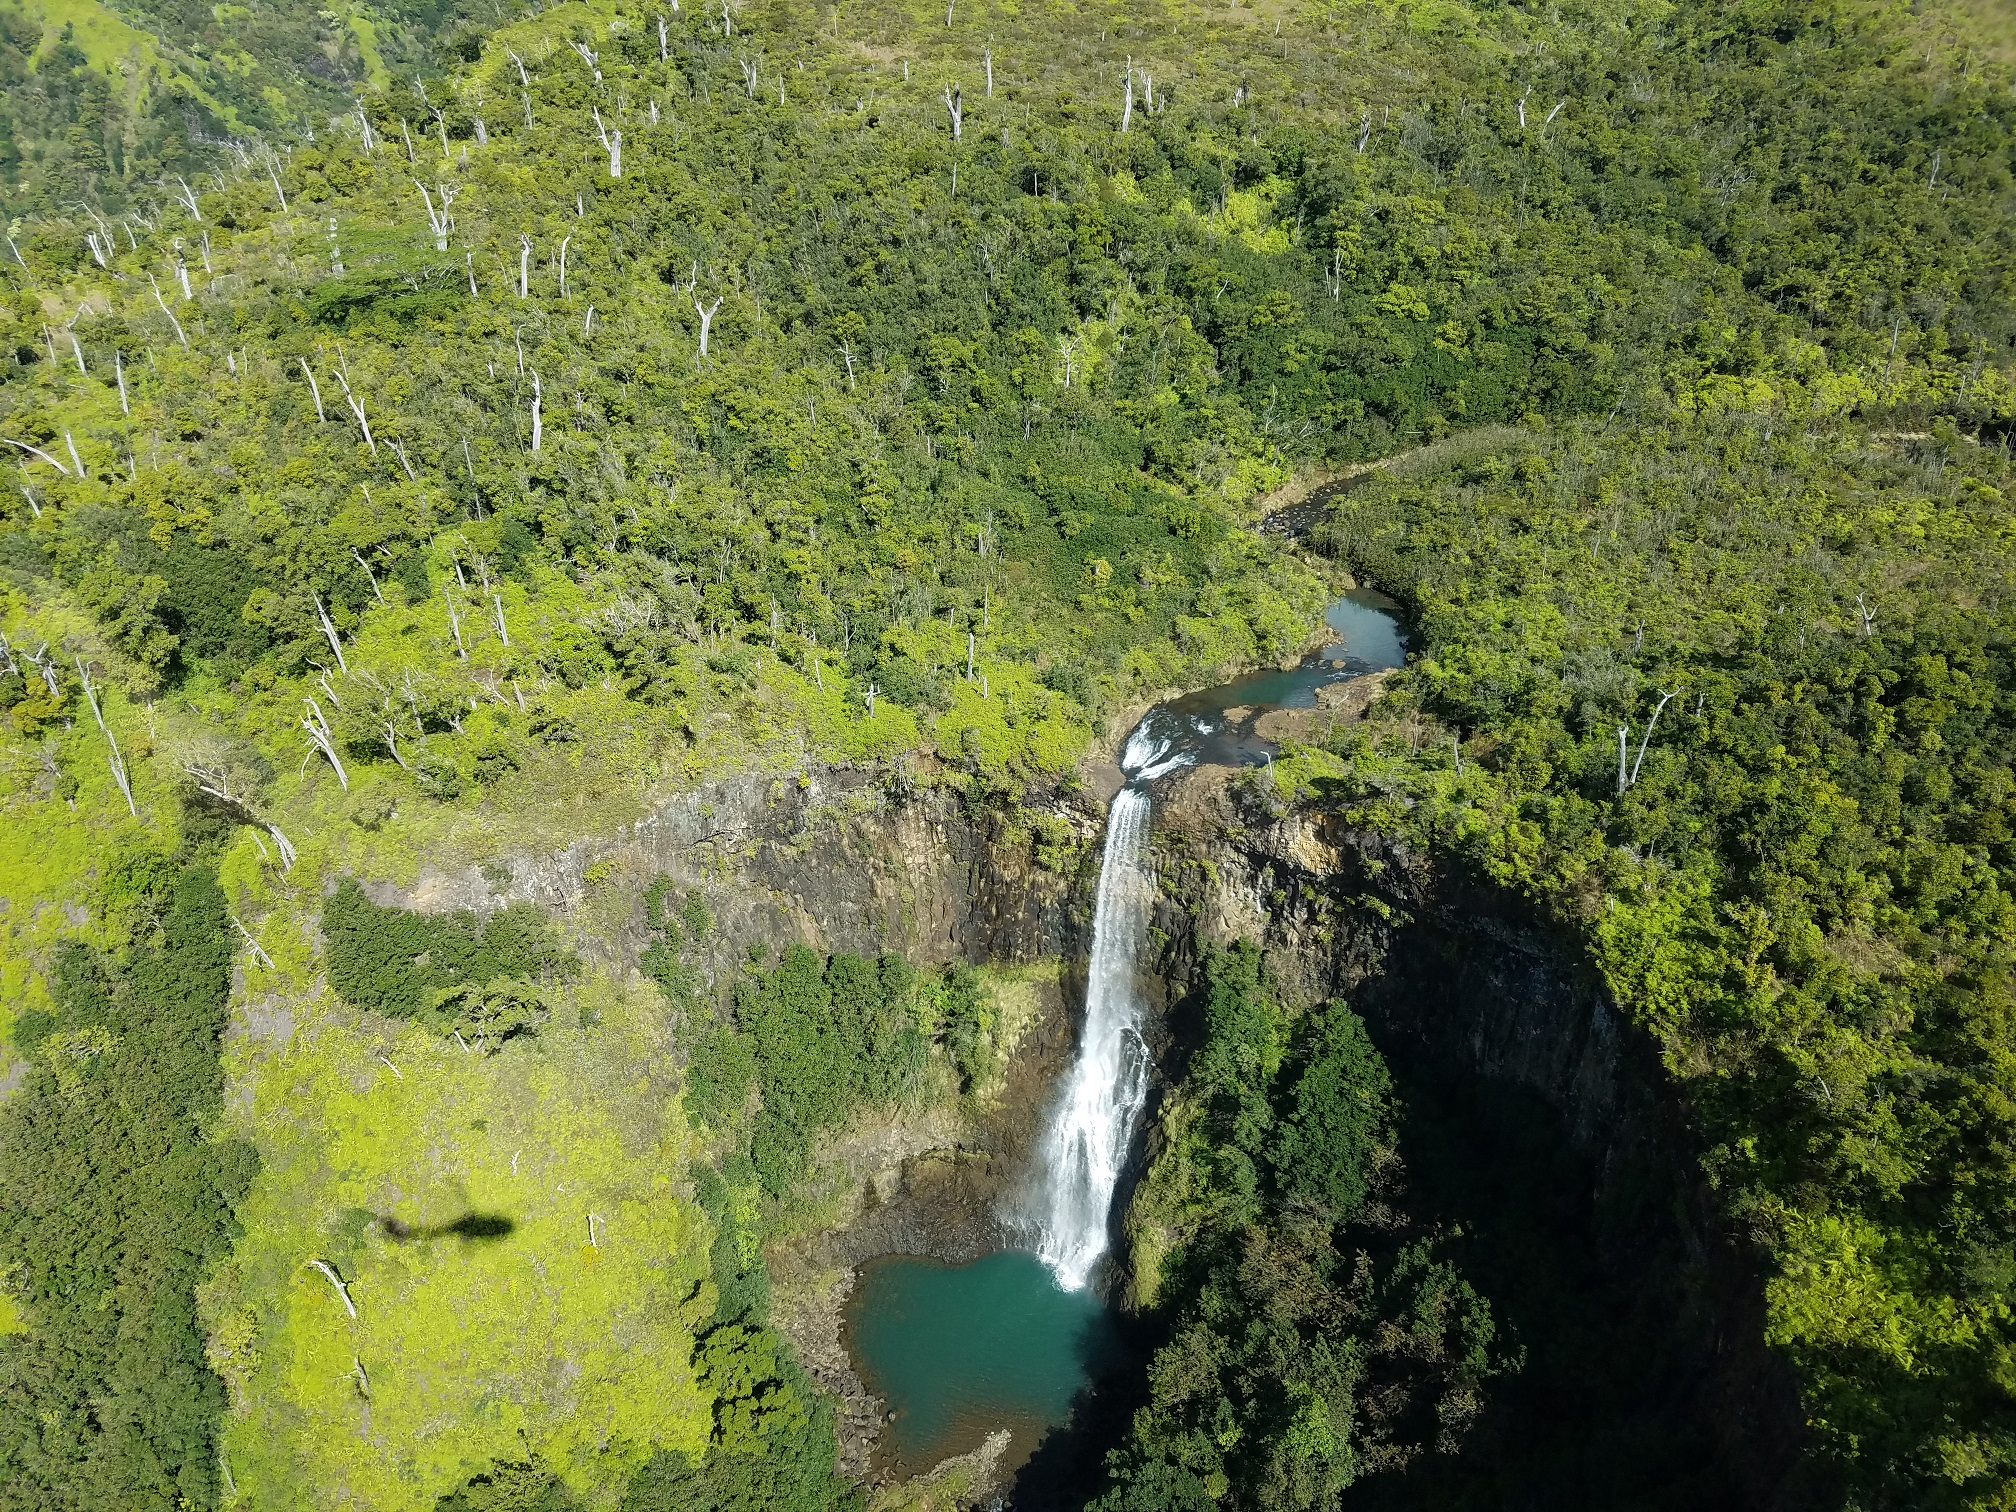 Ariel view of waterfall